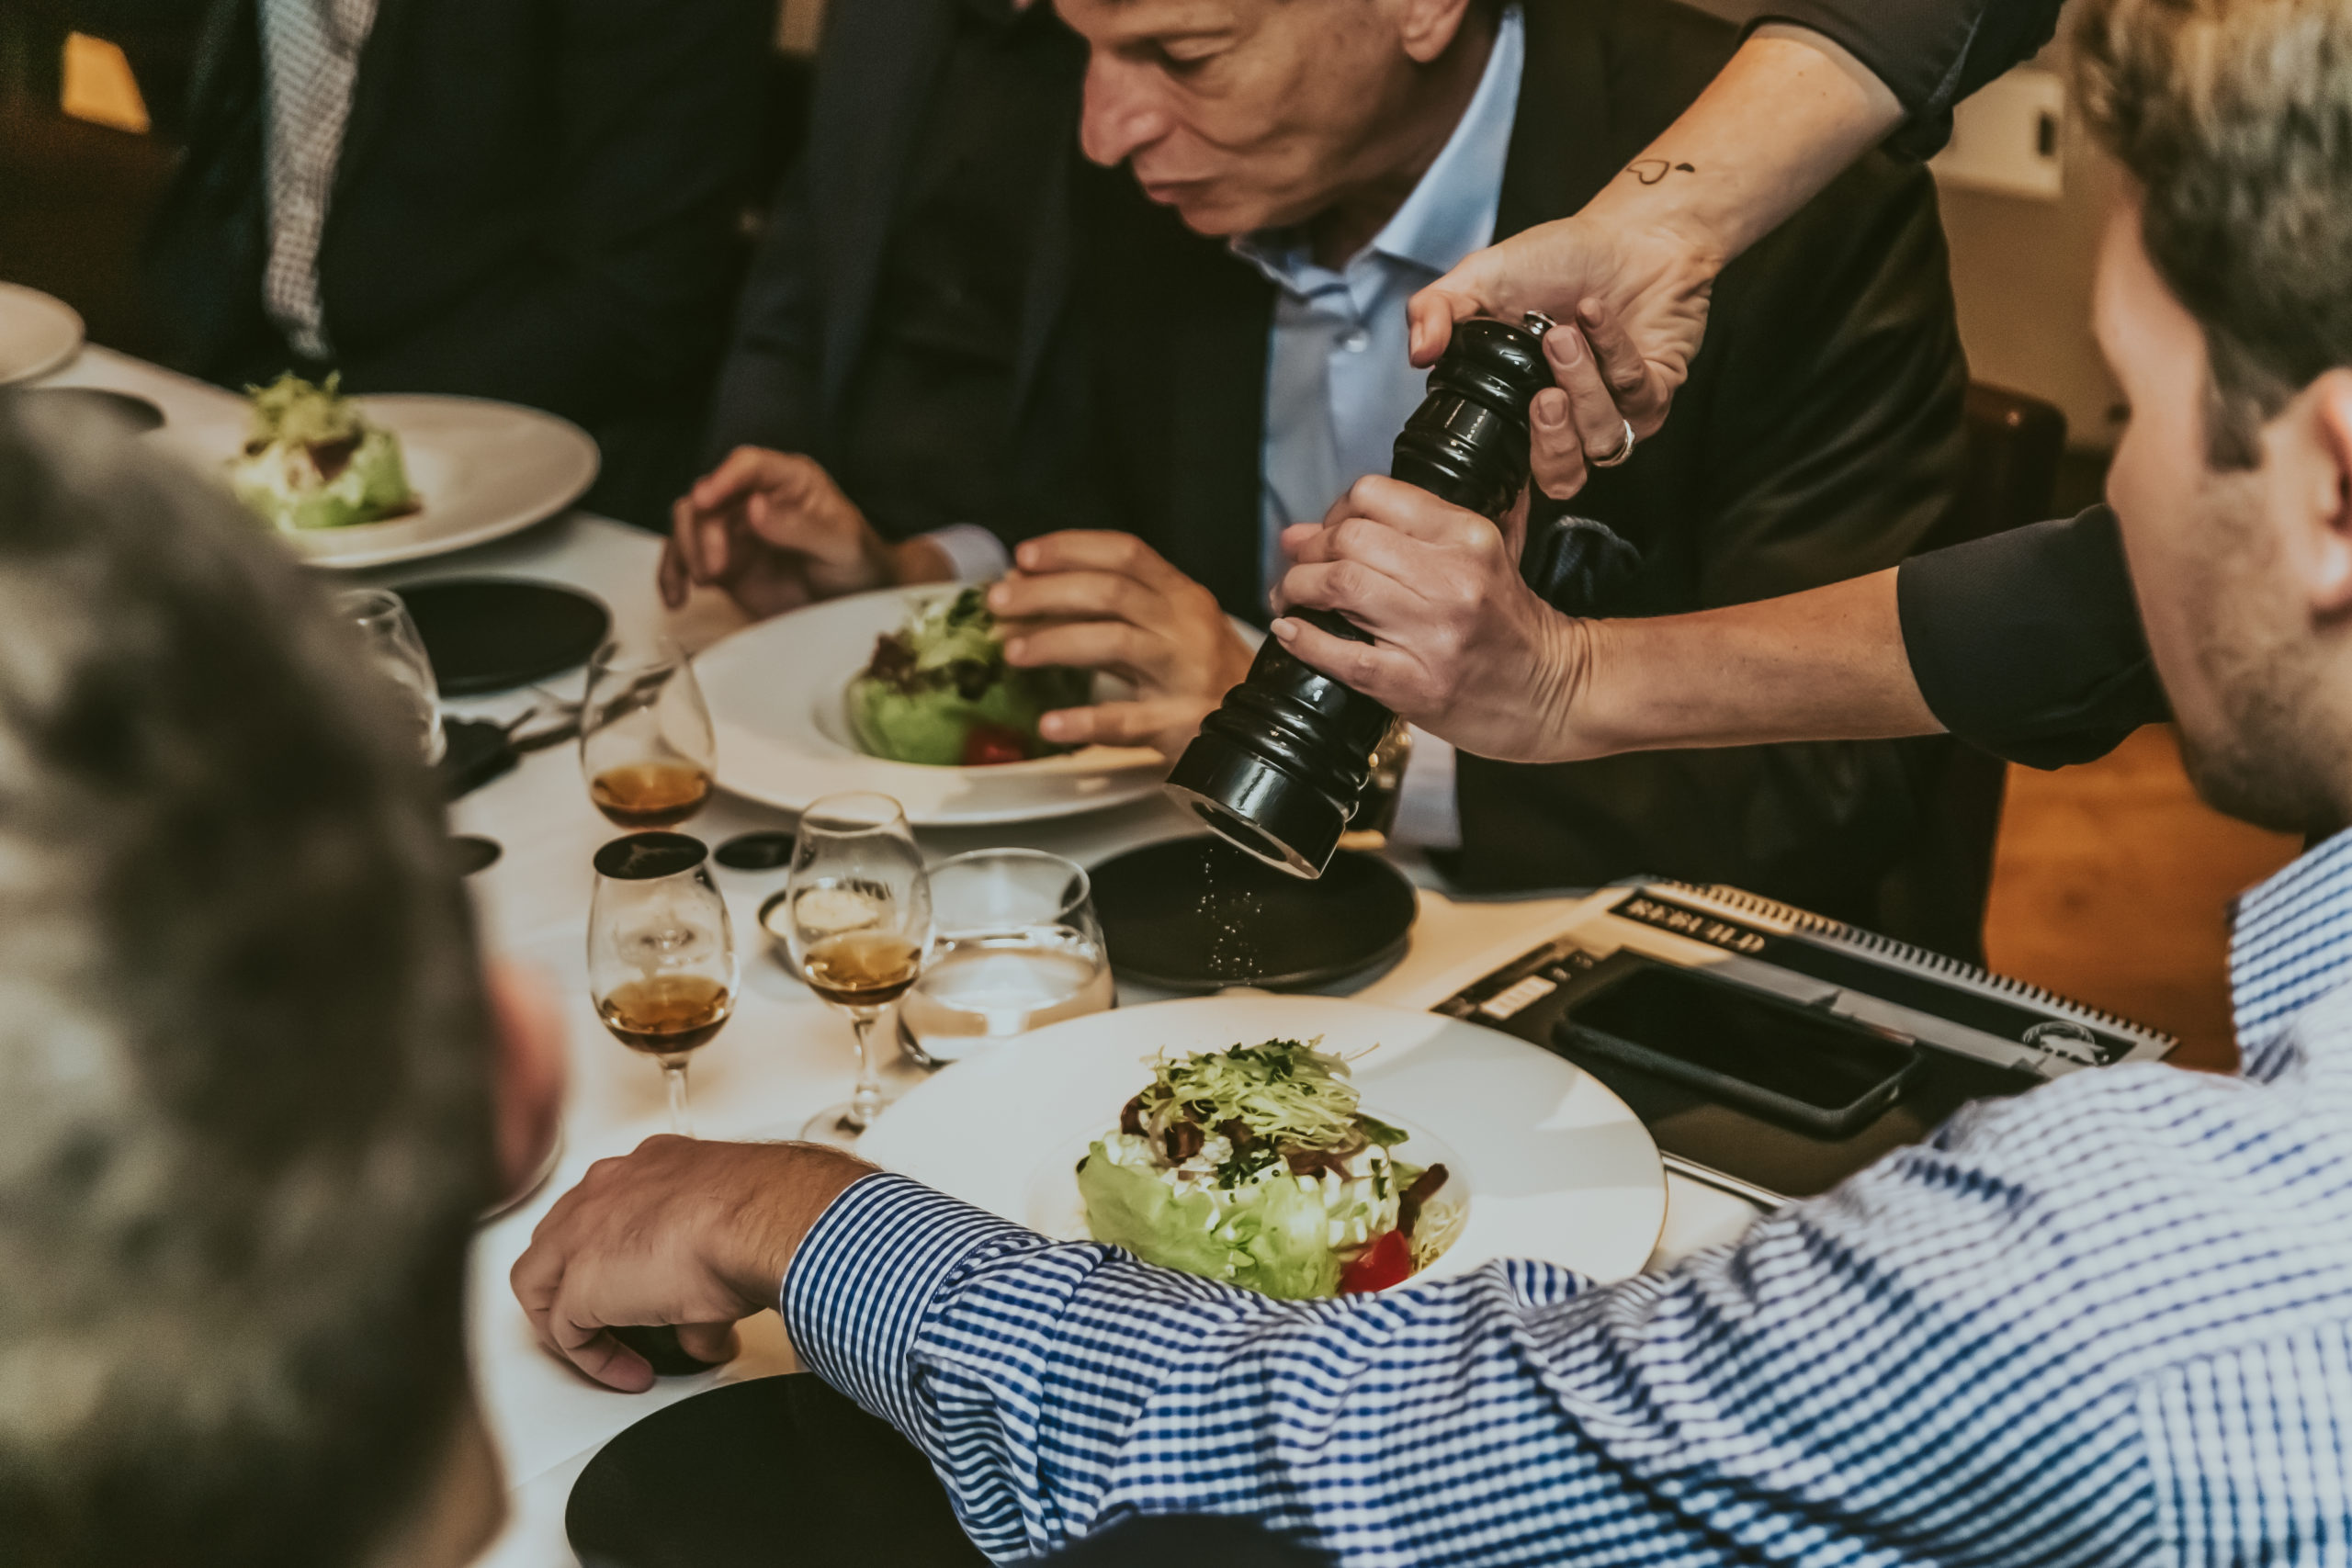 GlobalPro Partners with The Dalmore Whisky to Host an Exceptional Dining Experience at STRIPSTEAK by Michael Mina